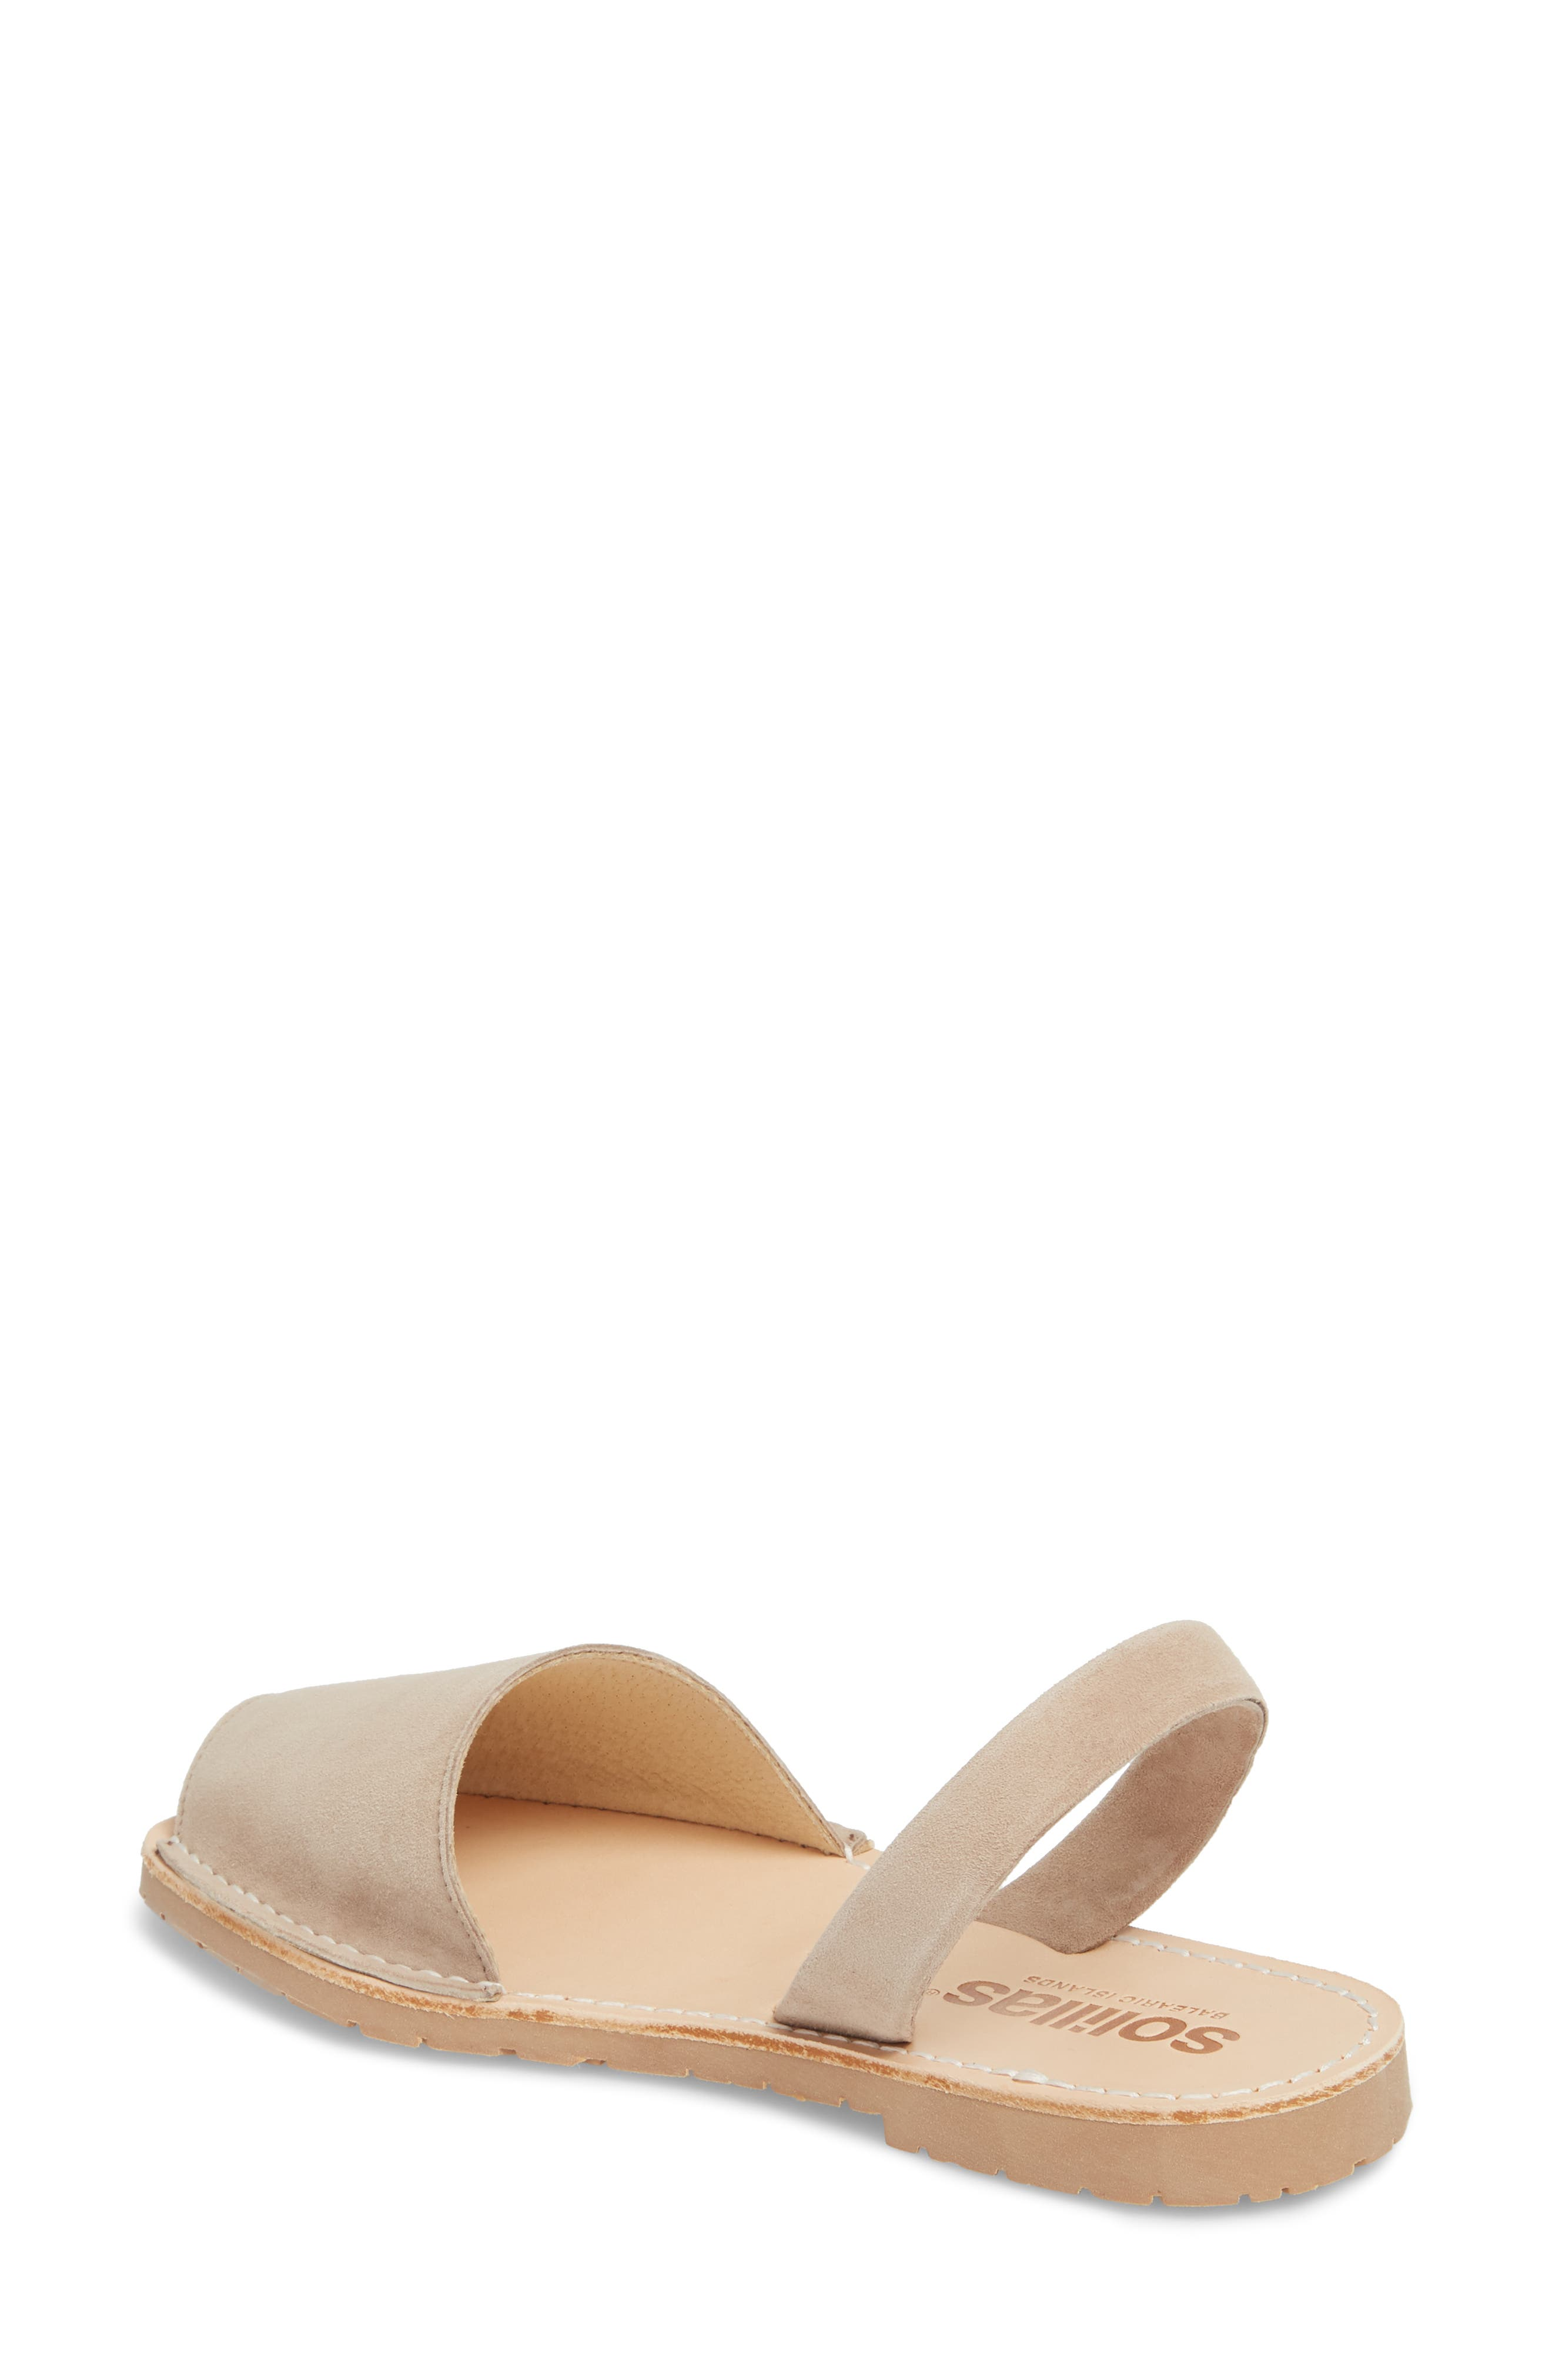 Flat Sandal,                             Alternate thumbnail 2, color,                             Taupe